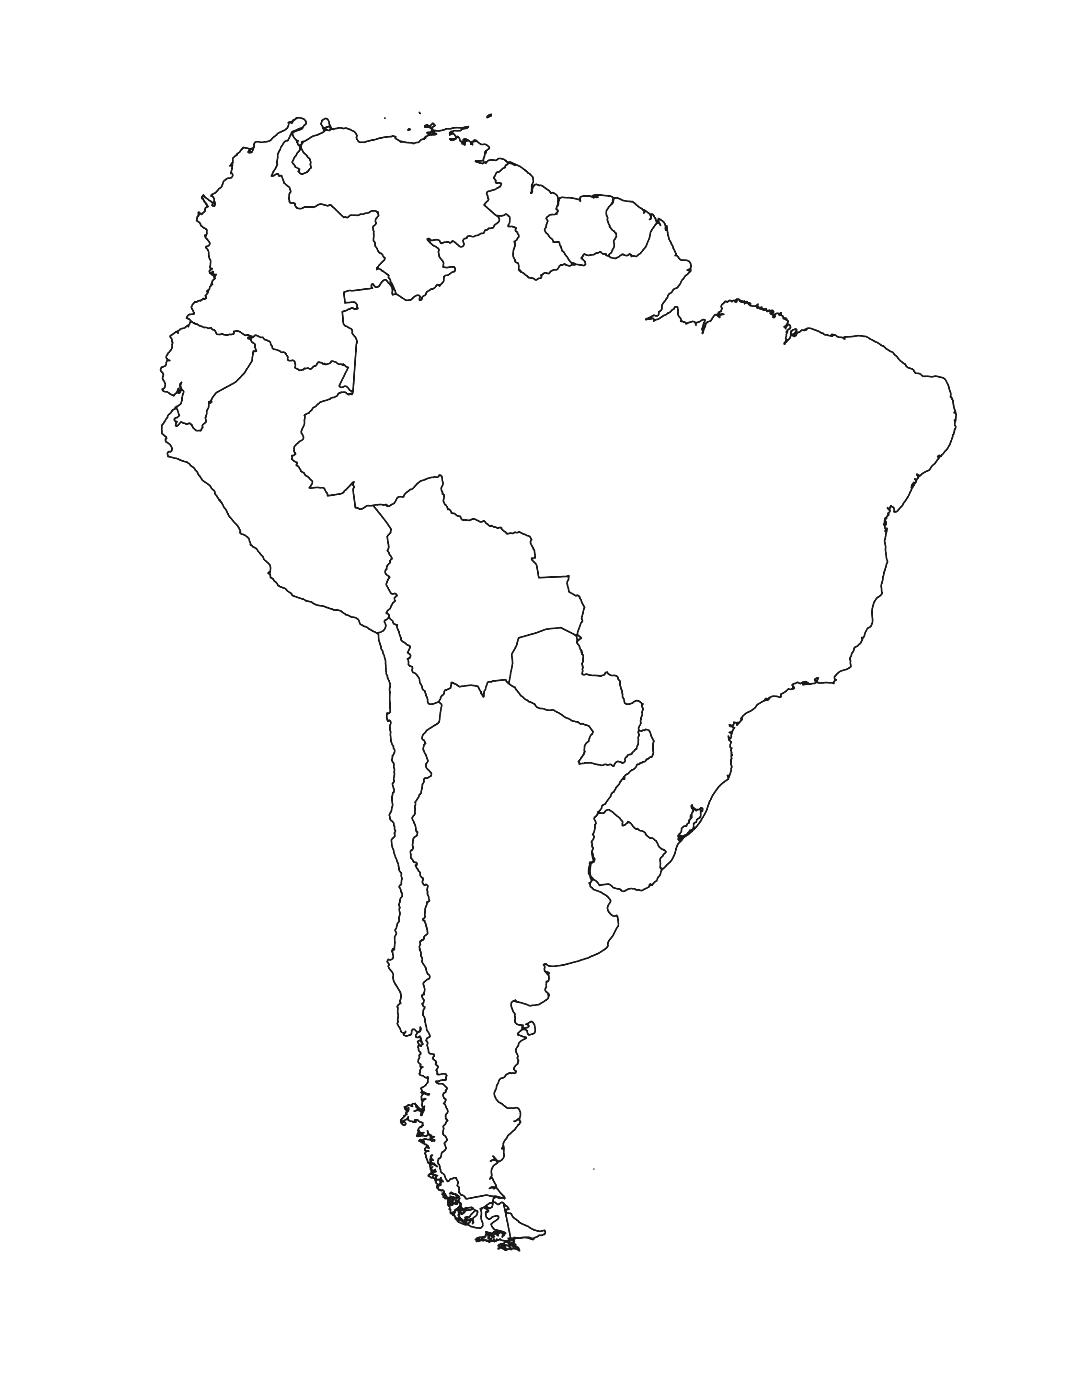 hight resolution of First Period Getting to know South America   Interactive Worksheet by David  Donnell   Wizer.me